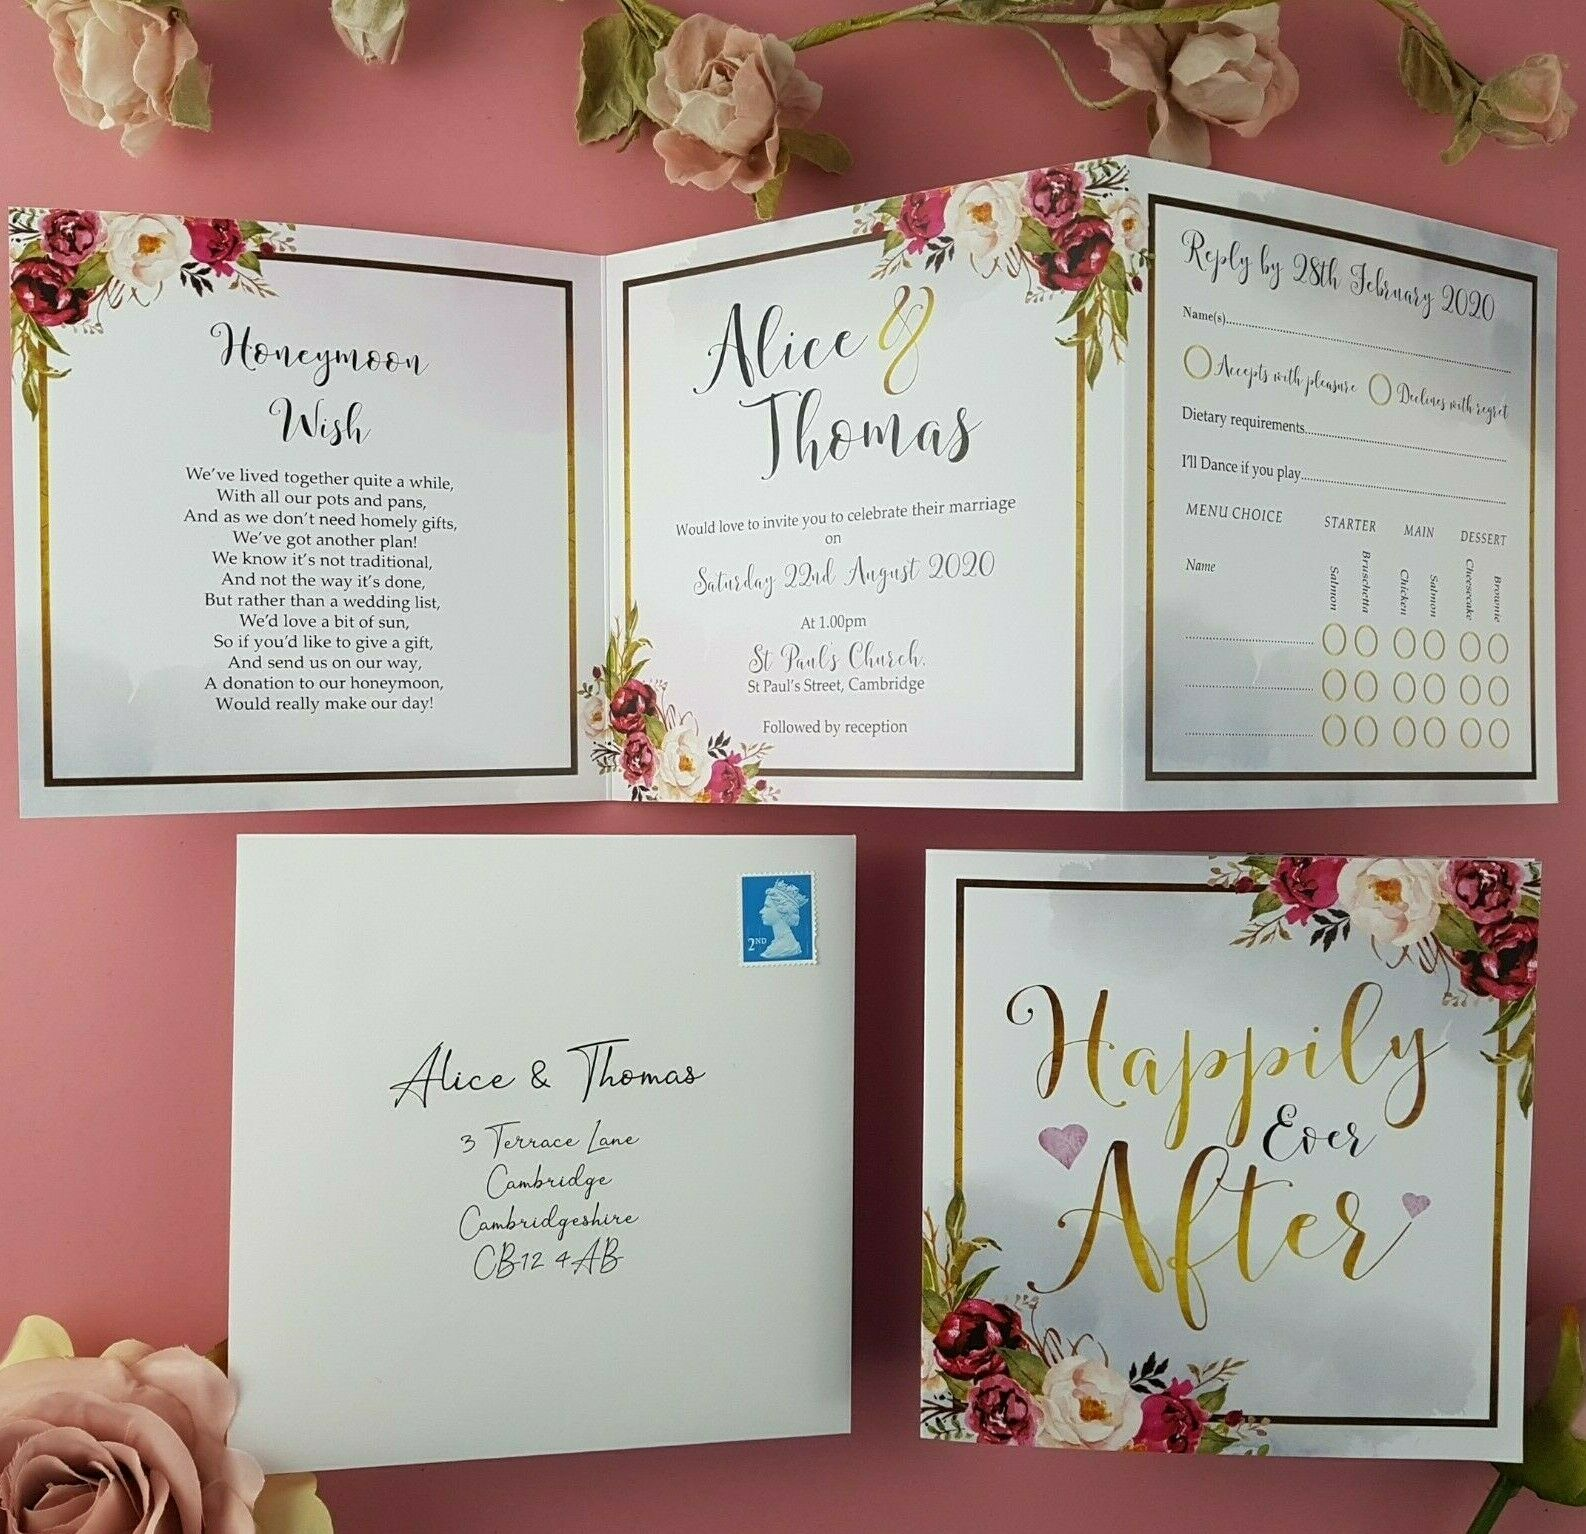 Trifold Wedding Invitations With Envelopes Or Evening Invitations + Menu Options